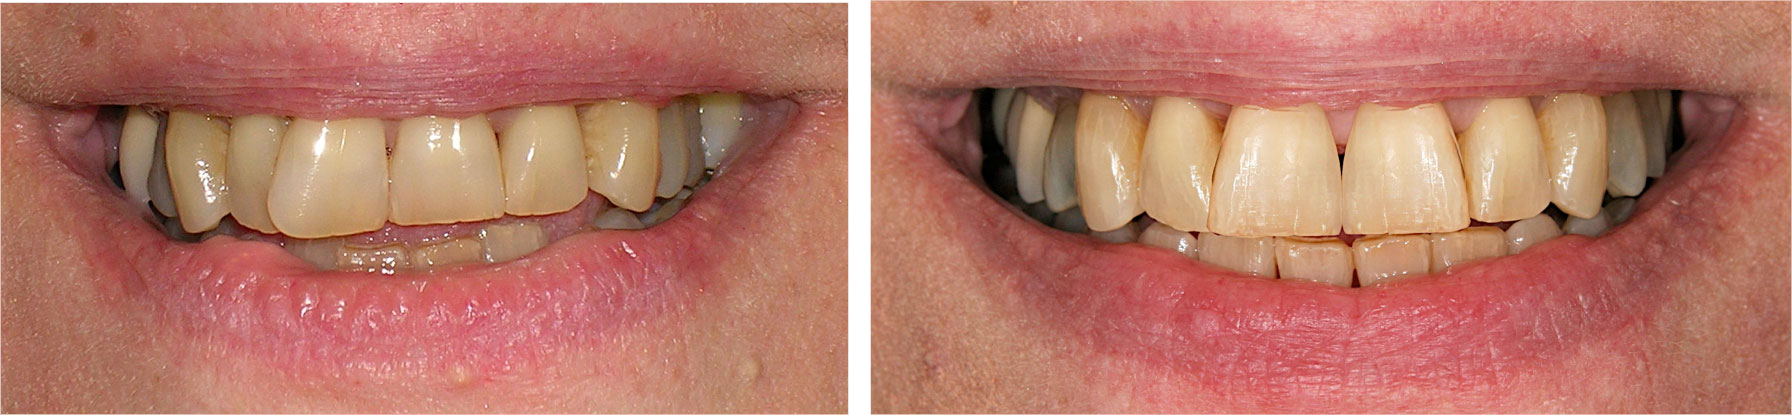 Before and After Dental Fillings Financial District